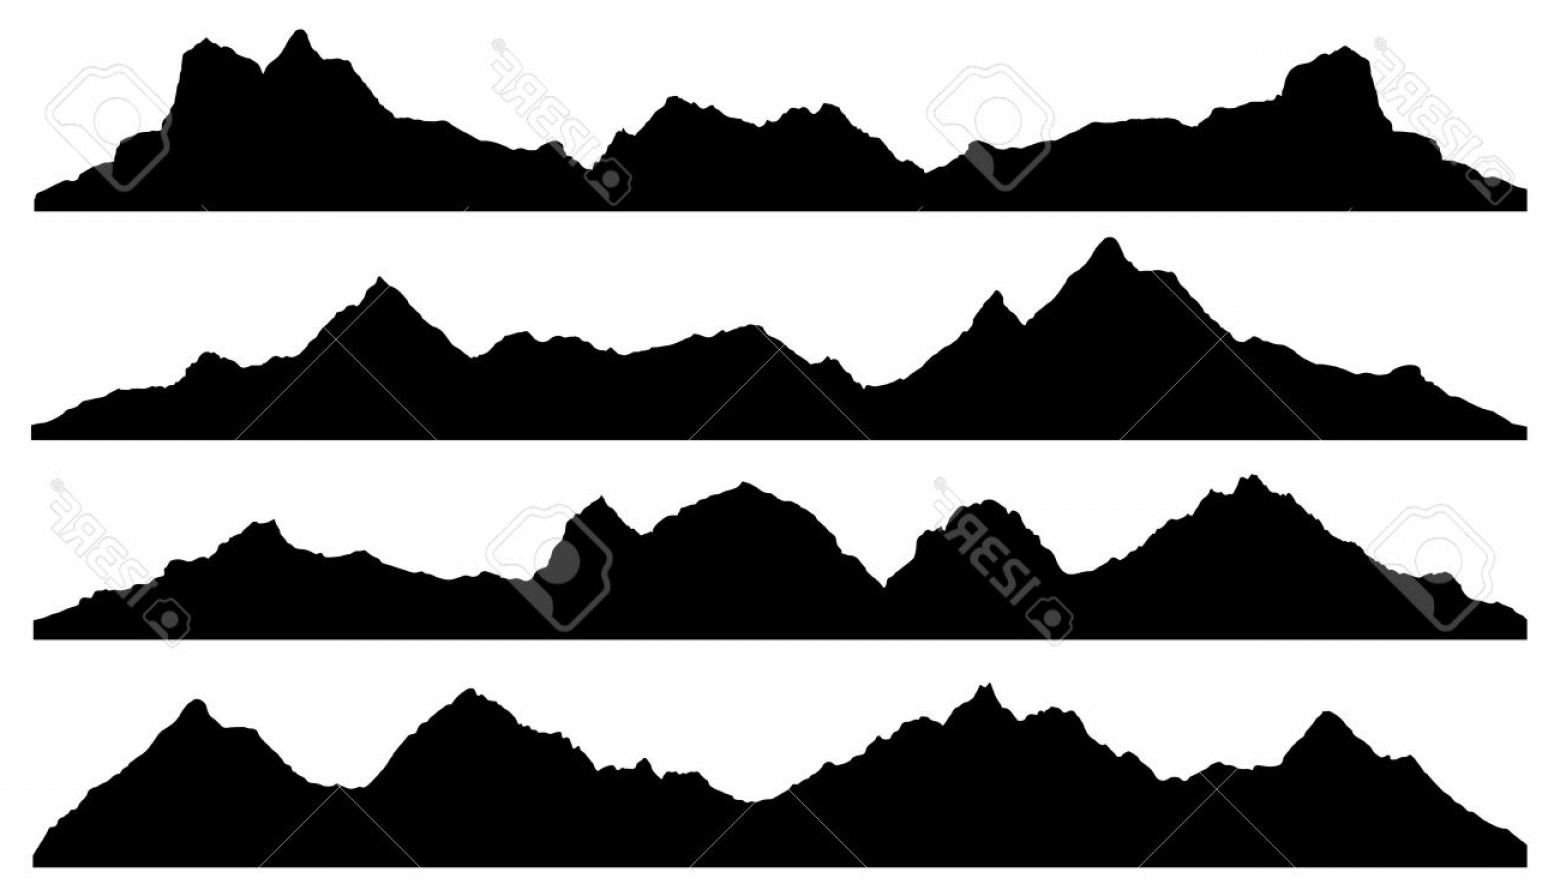 Mountain Range Silhouette Vector Free: Elegant Photostock Vector Mountain Silhouettes On The White Background